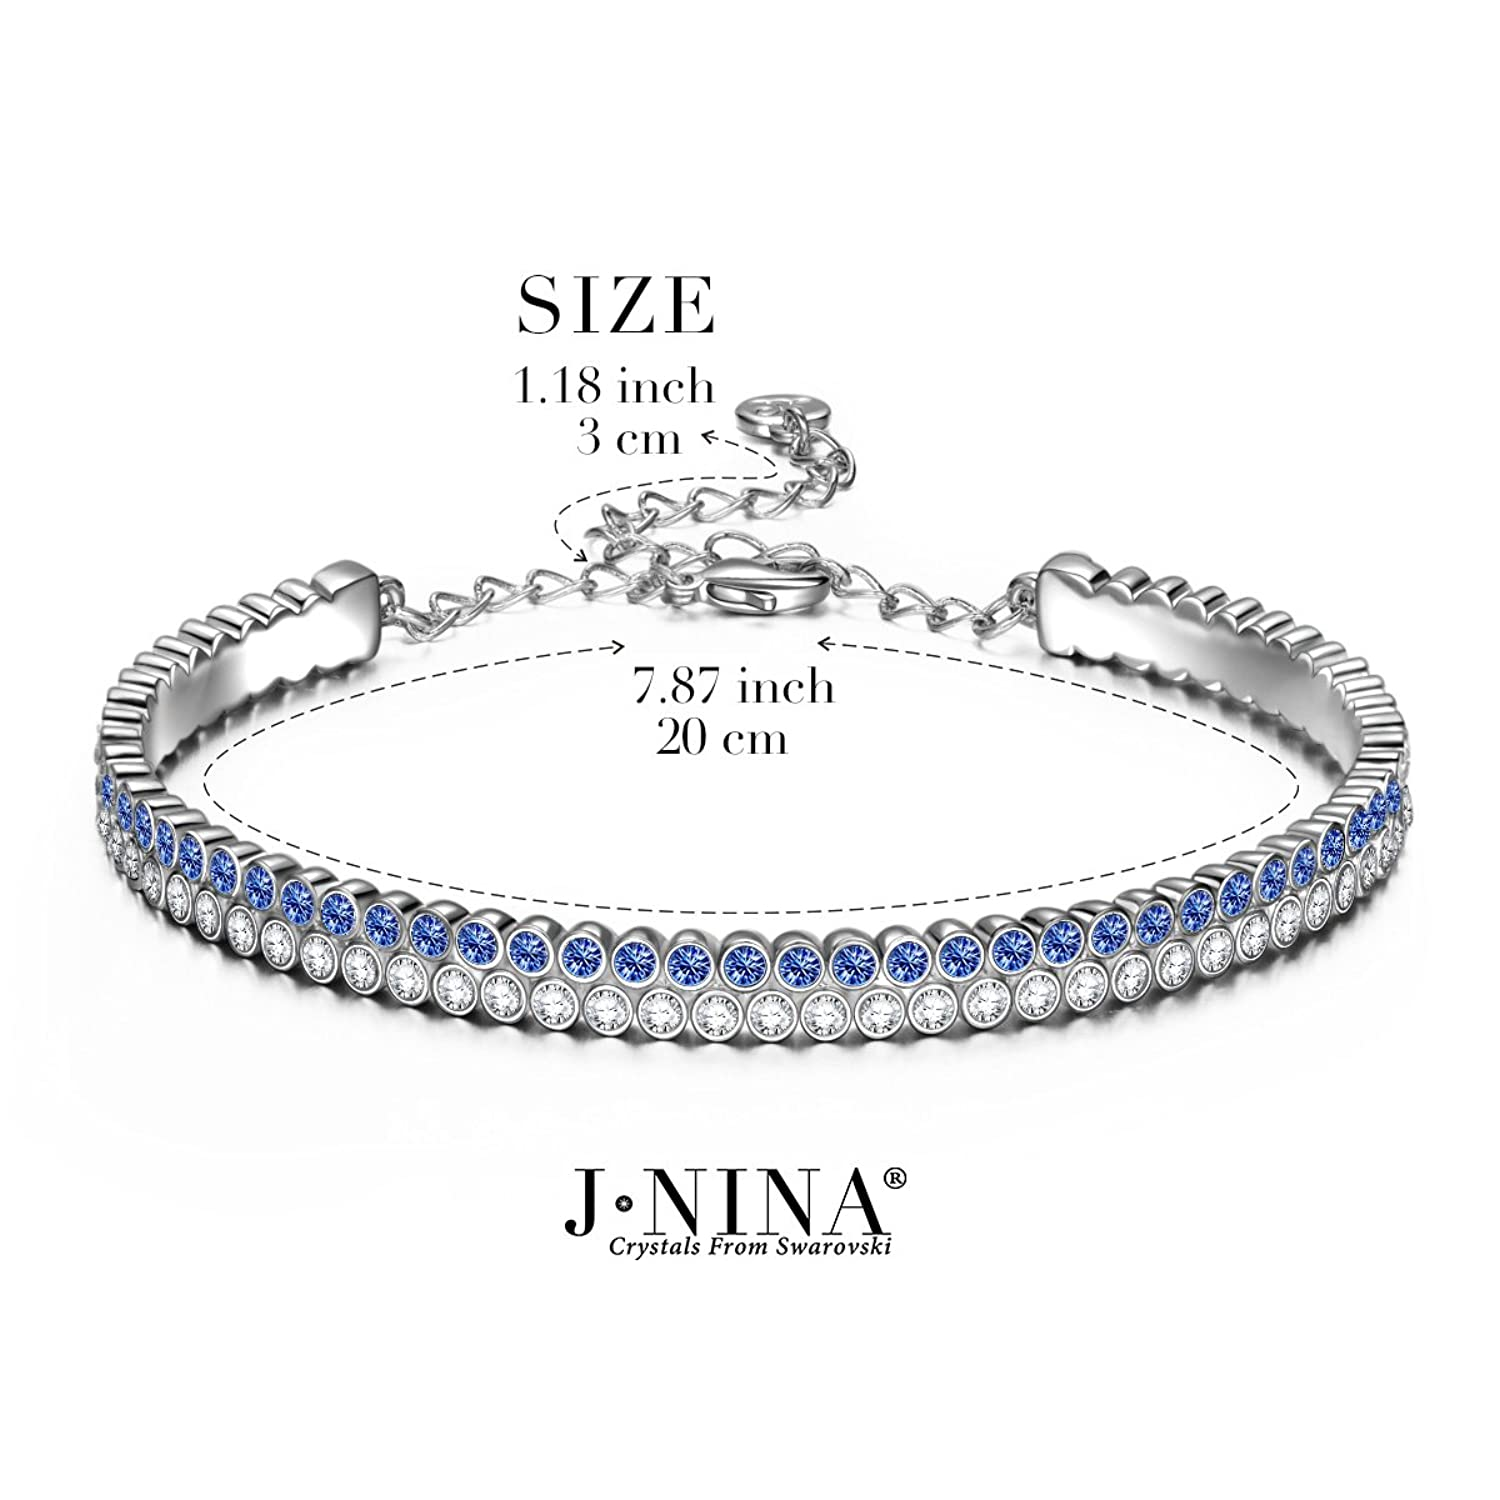 Amazon.com: J.NINA Bracelet for women Galaxy Sapphire Tennis Bangle with Swarovski  Crystal Jewelry. Gift for Wife Girlfriend on Anniversary Mothers Day ...